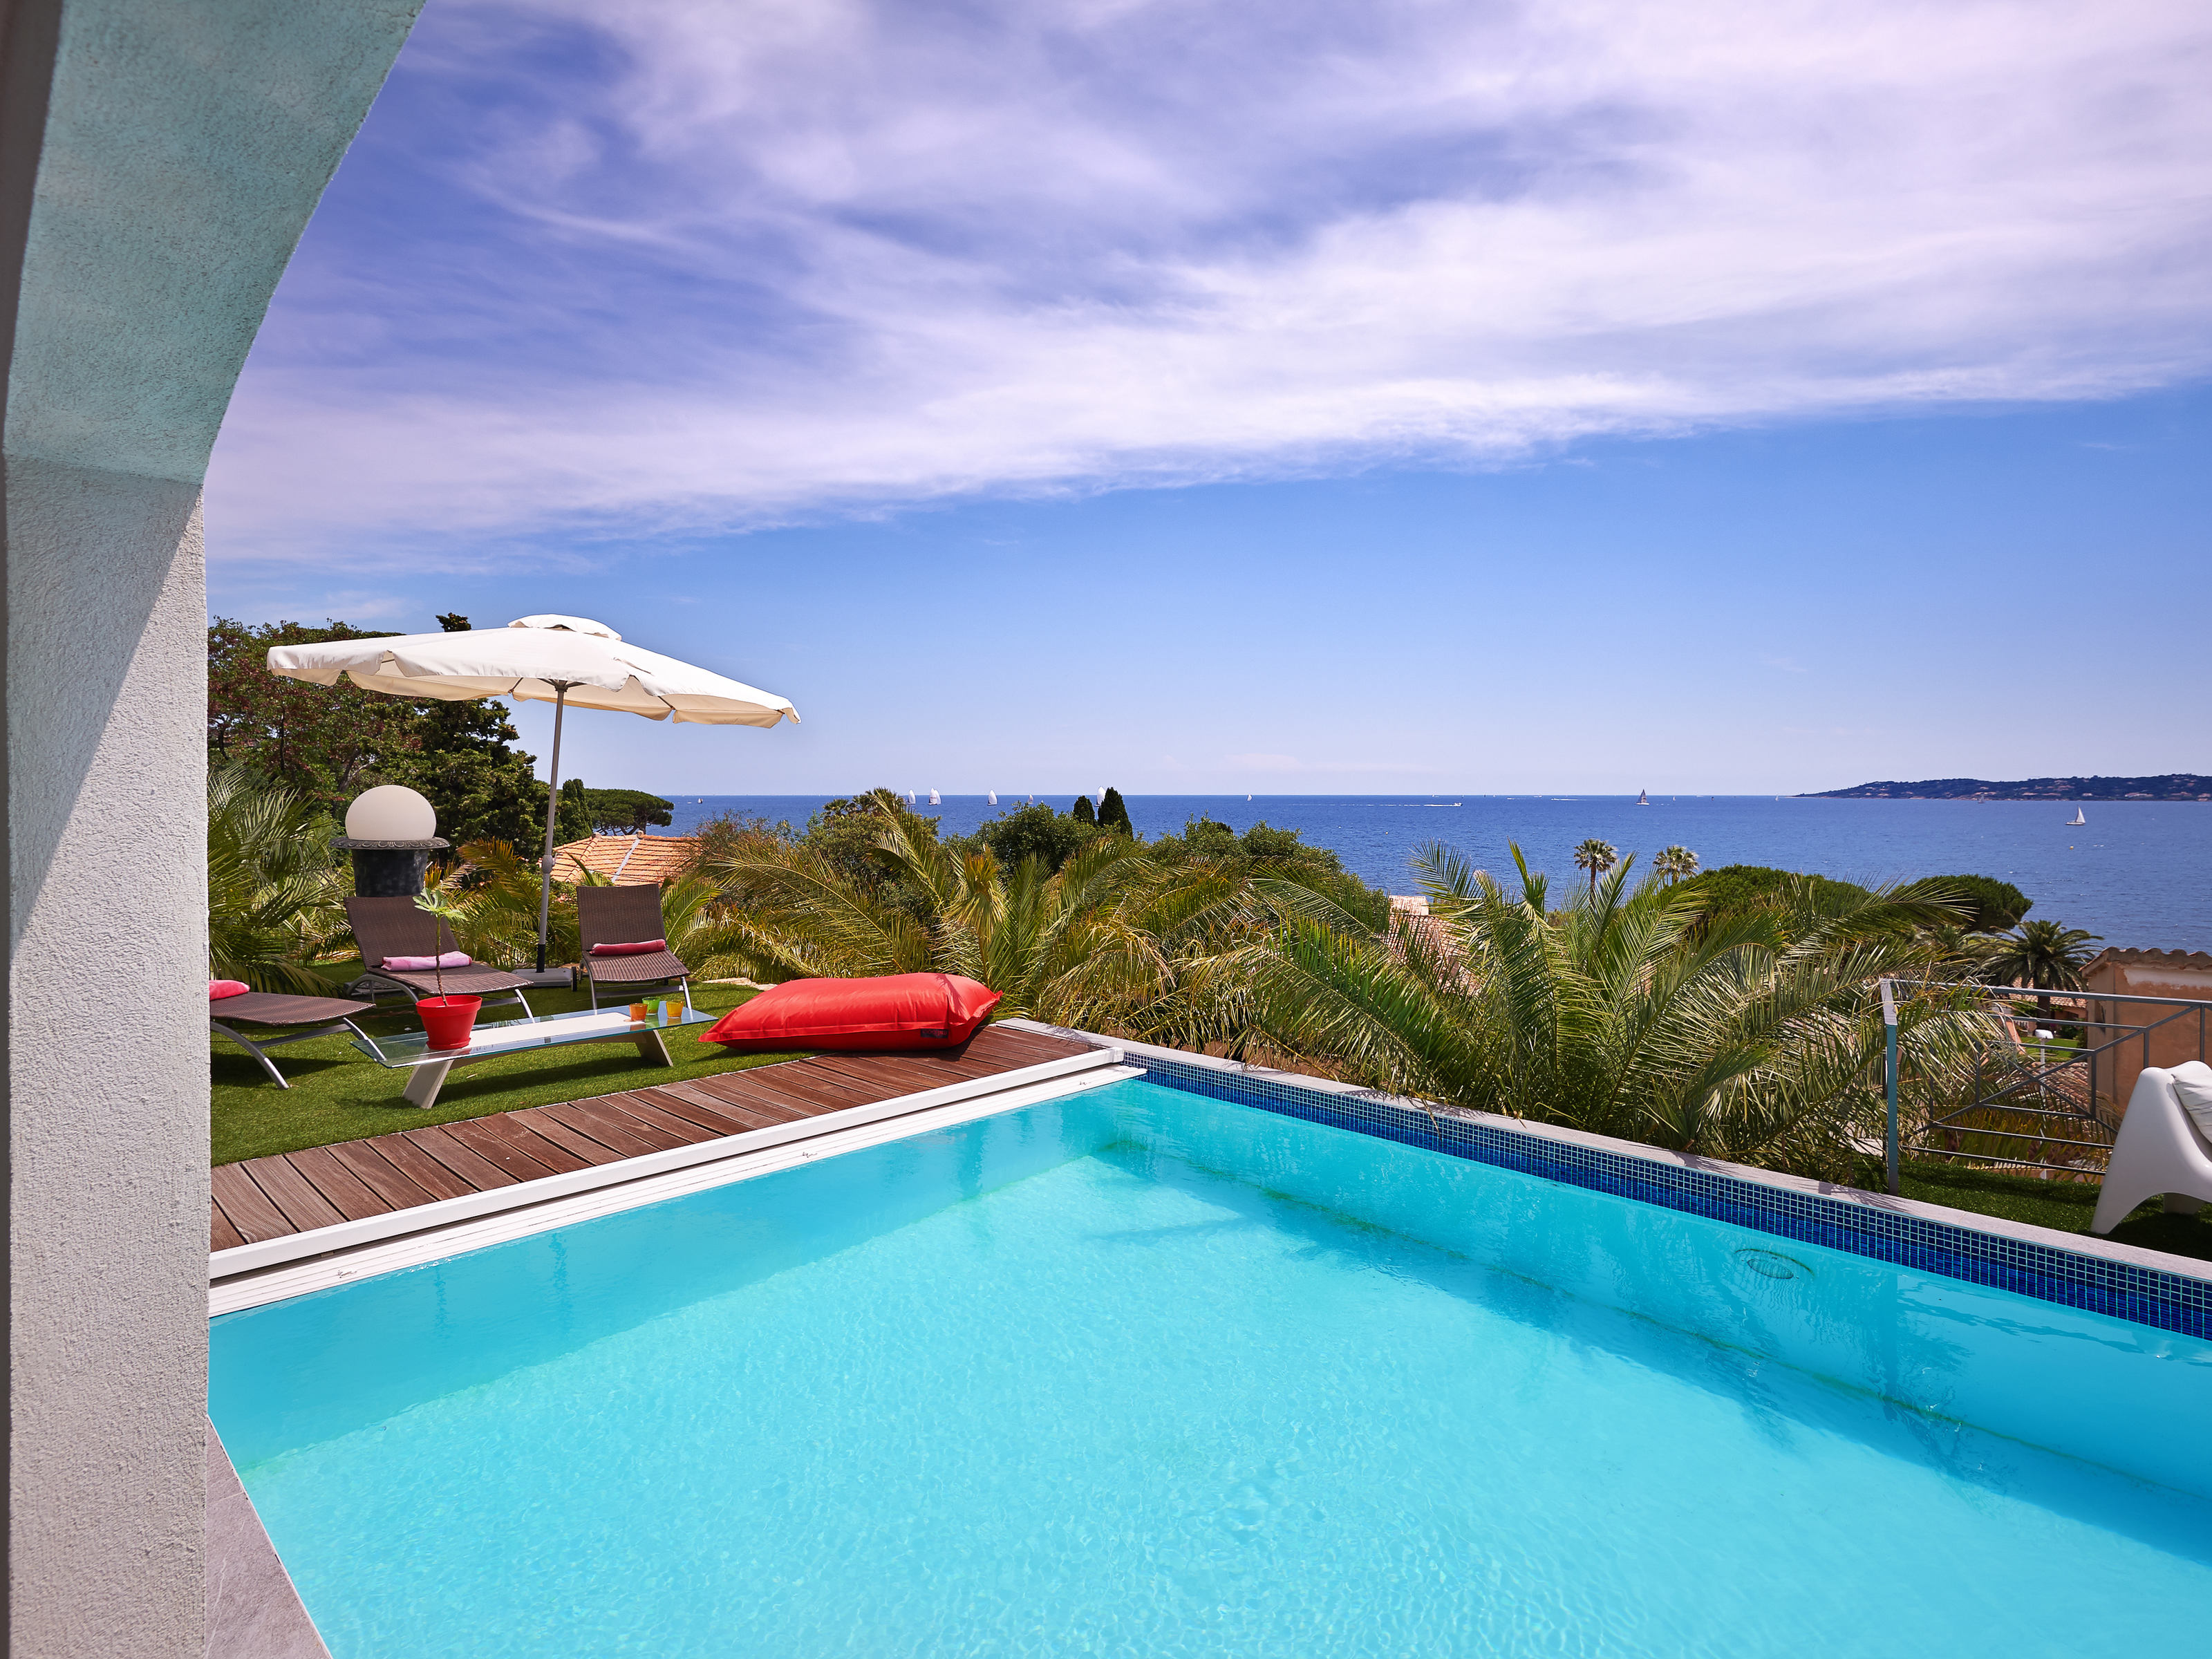 Additional photo for property listing at Luxurious Villa with breathtaking views over Saint Tropez  Sainte Maxime, Provence-Alpes-Cote D'Azur 83120 France